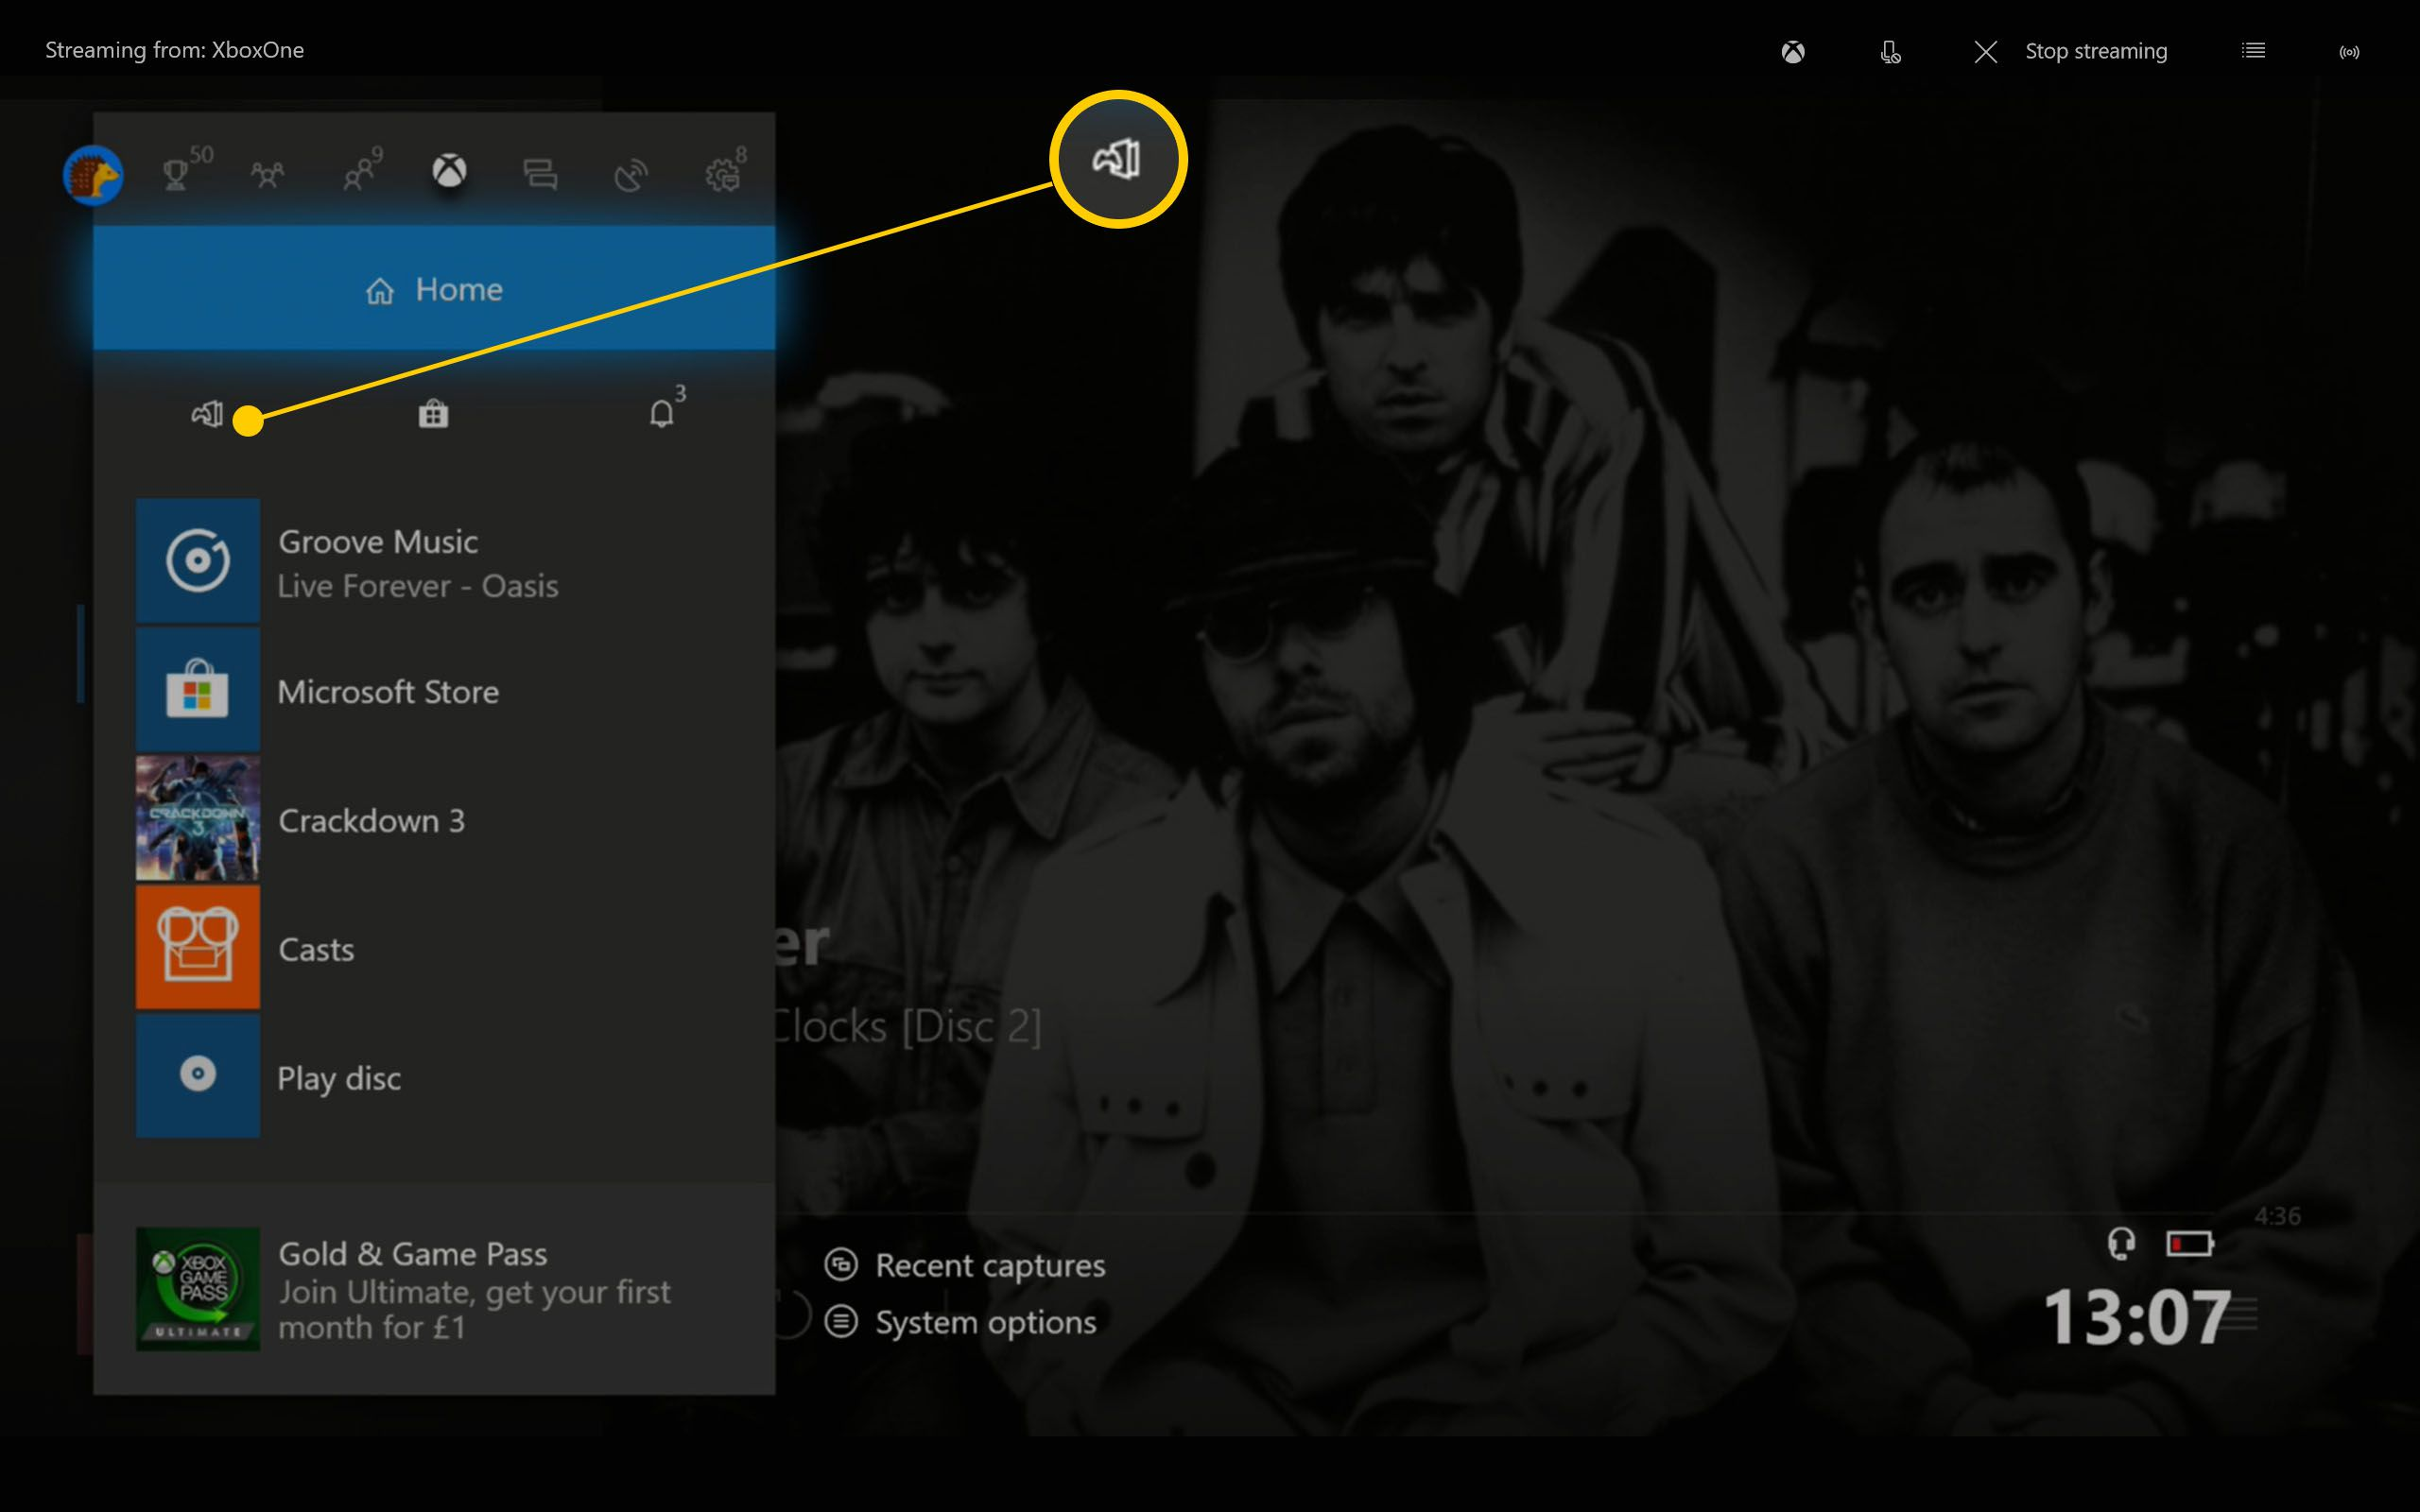 Xbox One Dashboard highlighting My Games & Apps